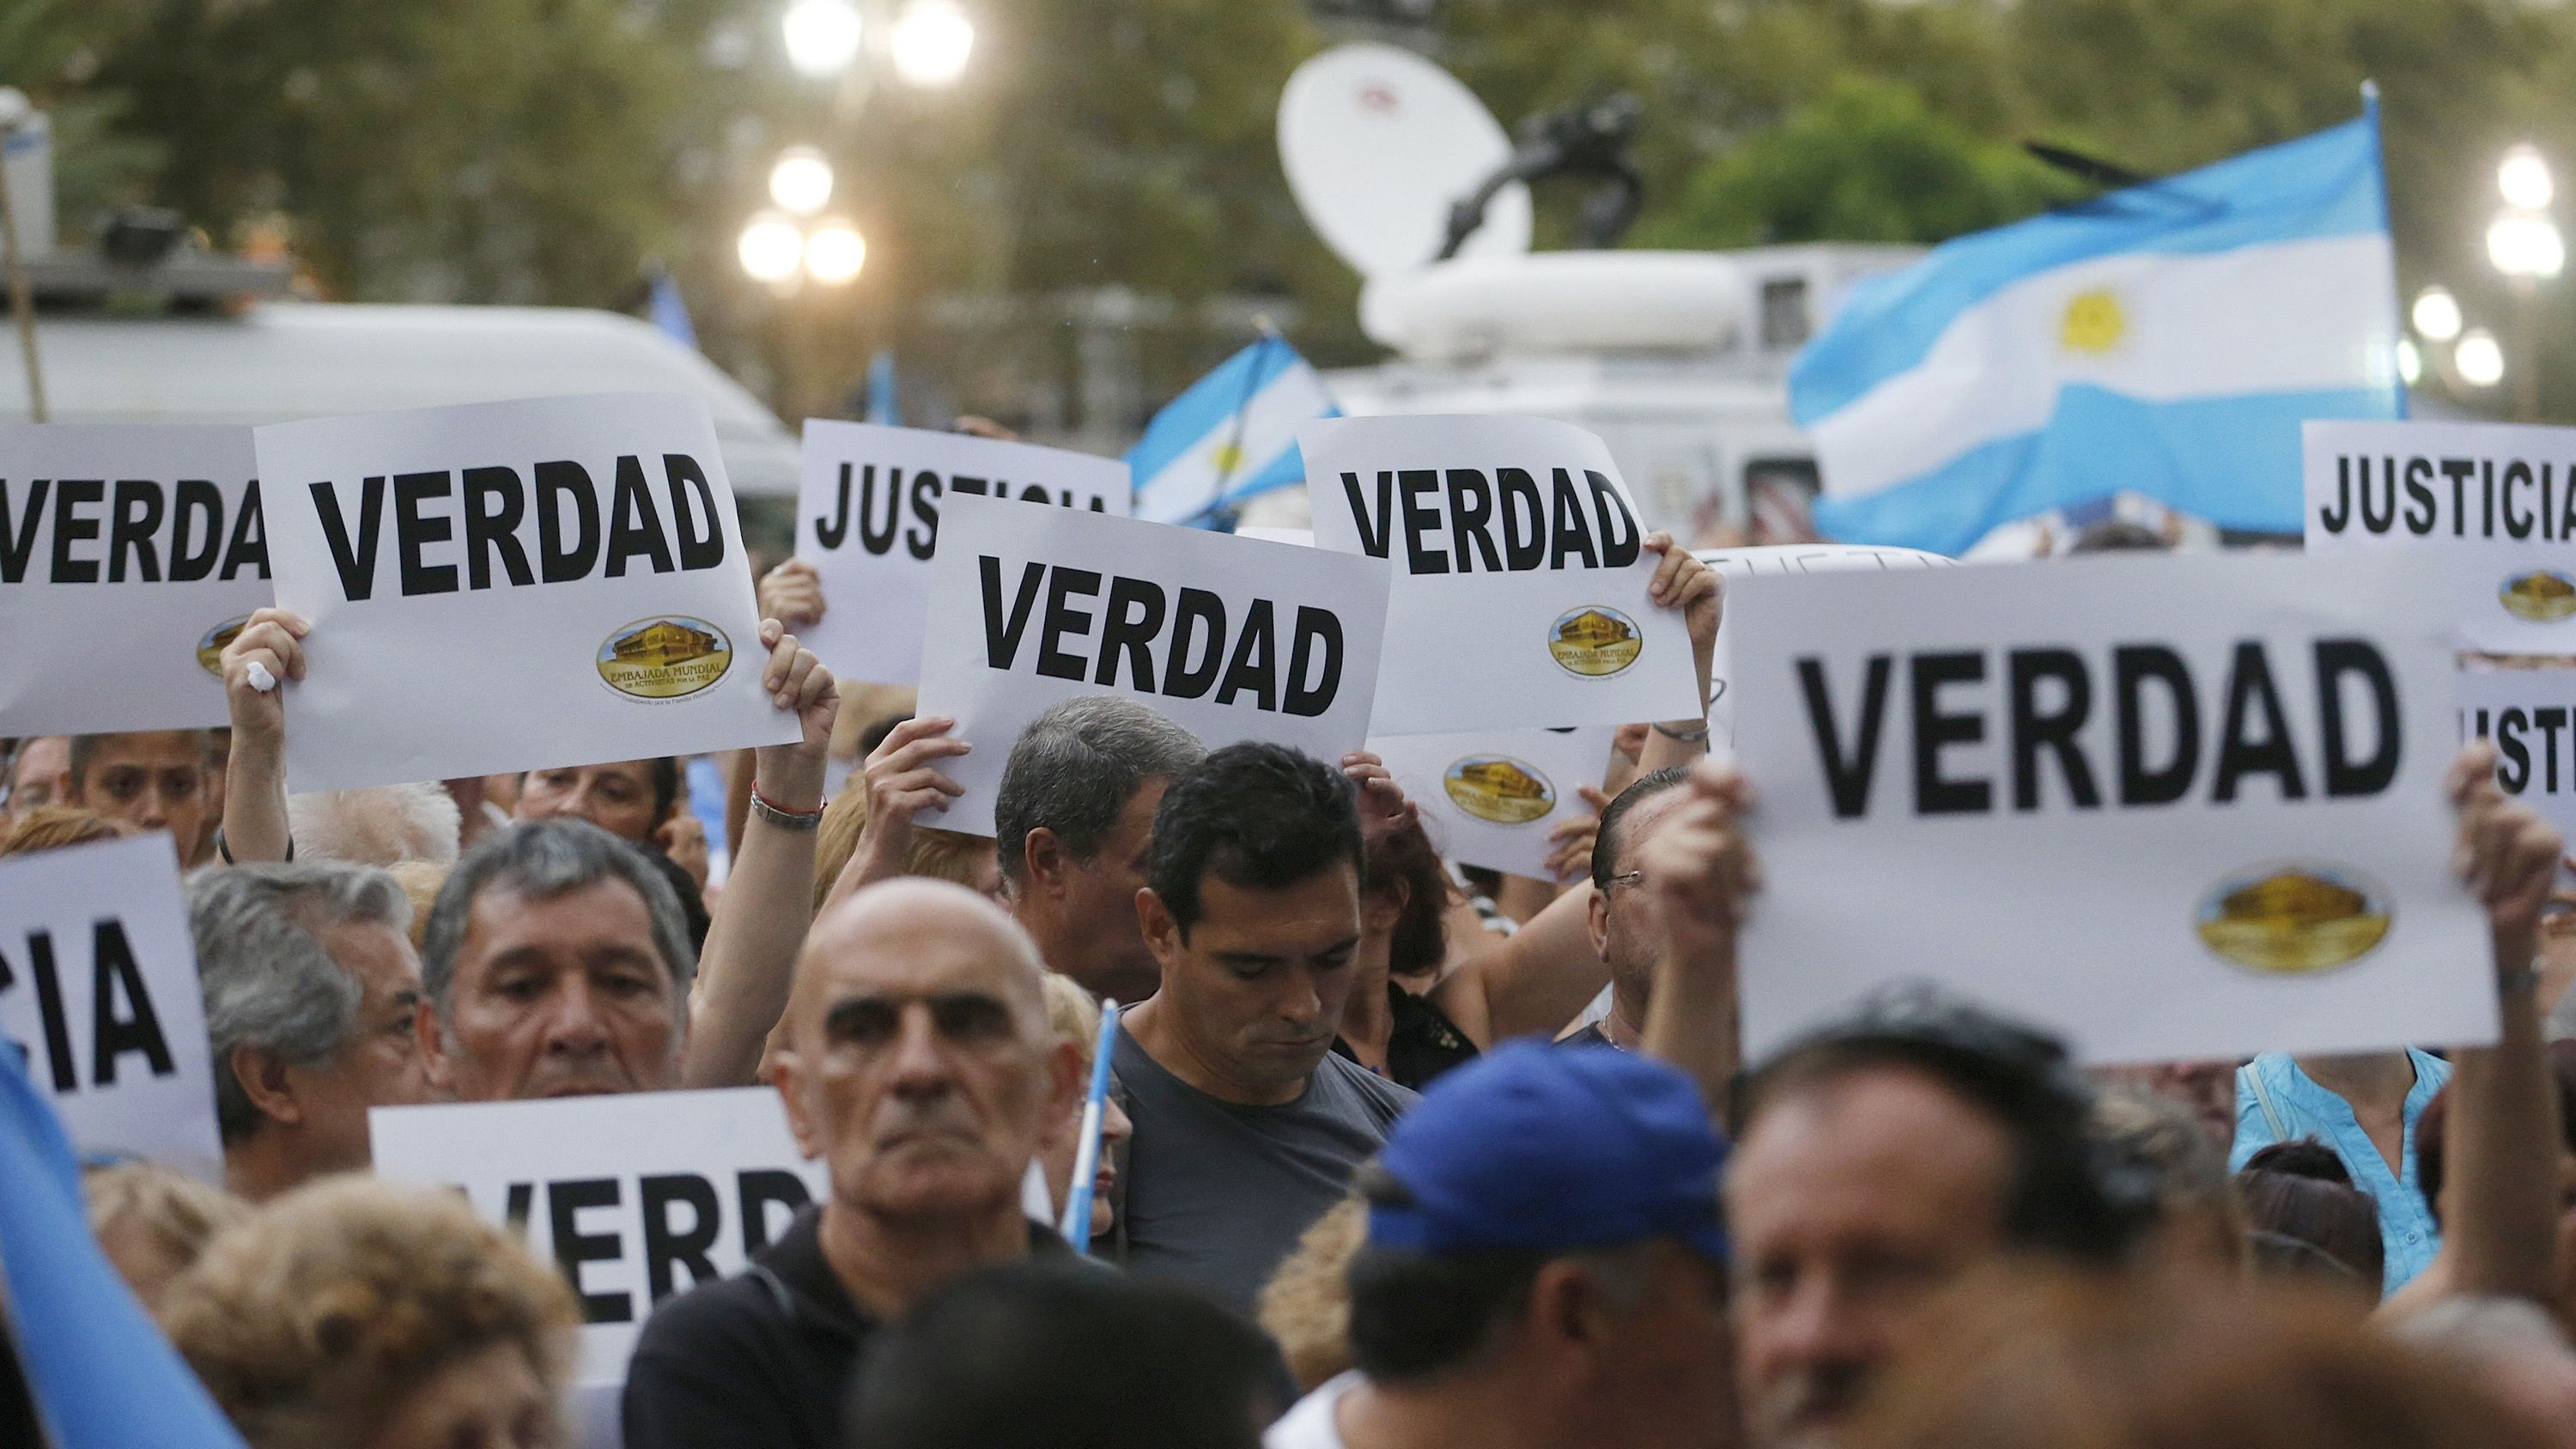 """Protesters hold up signs that read """"Truth"""" during a silent march to honour late state investigator Alberto Nisman in Buenos Aires February 18, 2015. Tens of thousands of Argentines are expected to march in silence through Argentina's capital, Buenos Aires, on Wednesday evening to honour Alberto Nisman, a state investigator who was poised to detail evidence behind his accusations that Argentine President Cristina Fernandez plotted to cover up his investigation into a 1994 bombing. Nisman was found dead with a single bullet to the head on January 18. REUTERS/Enrique Marcarian (ARGENTINA - Tags: POLITICS CIVIL UNREST CRIME LAW) - RTR4Q5XU"""